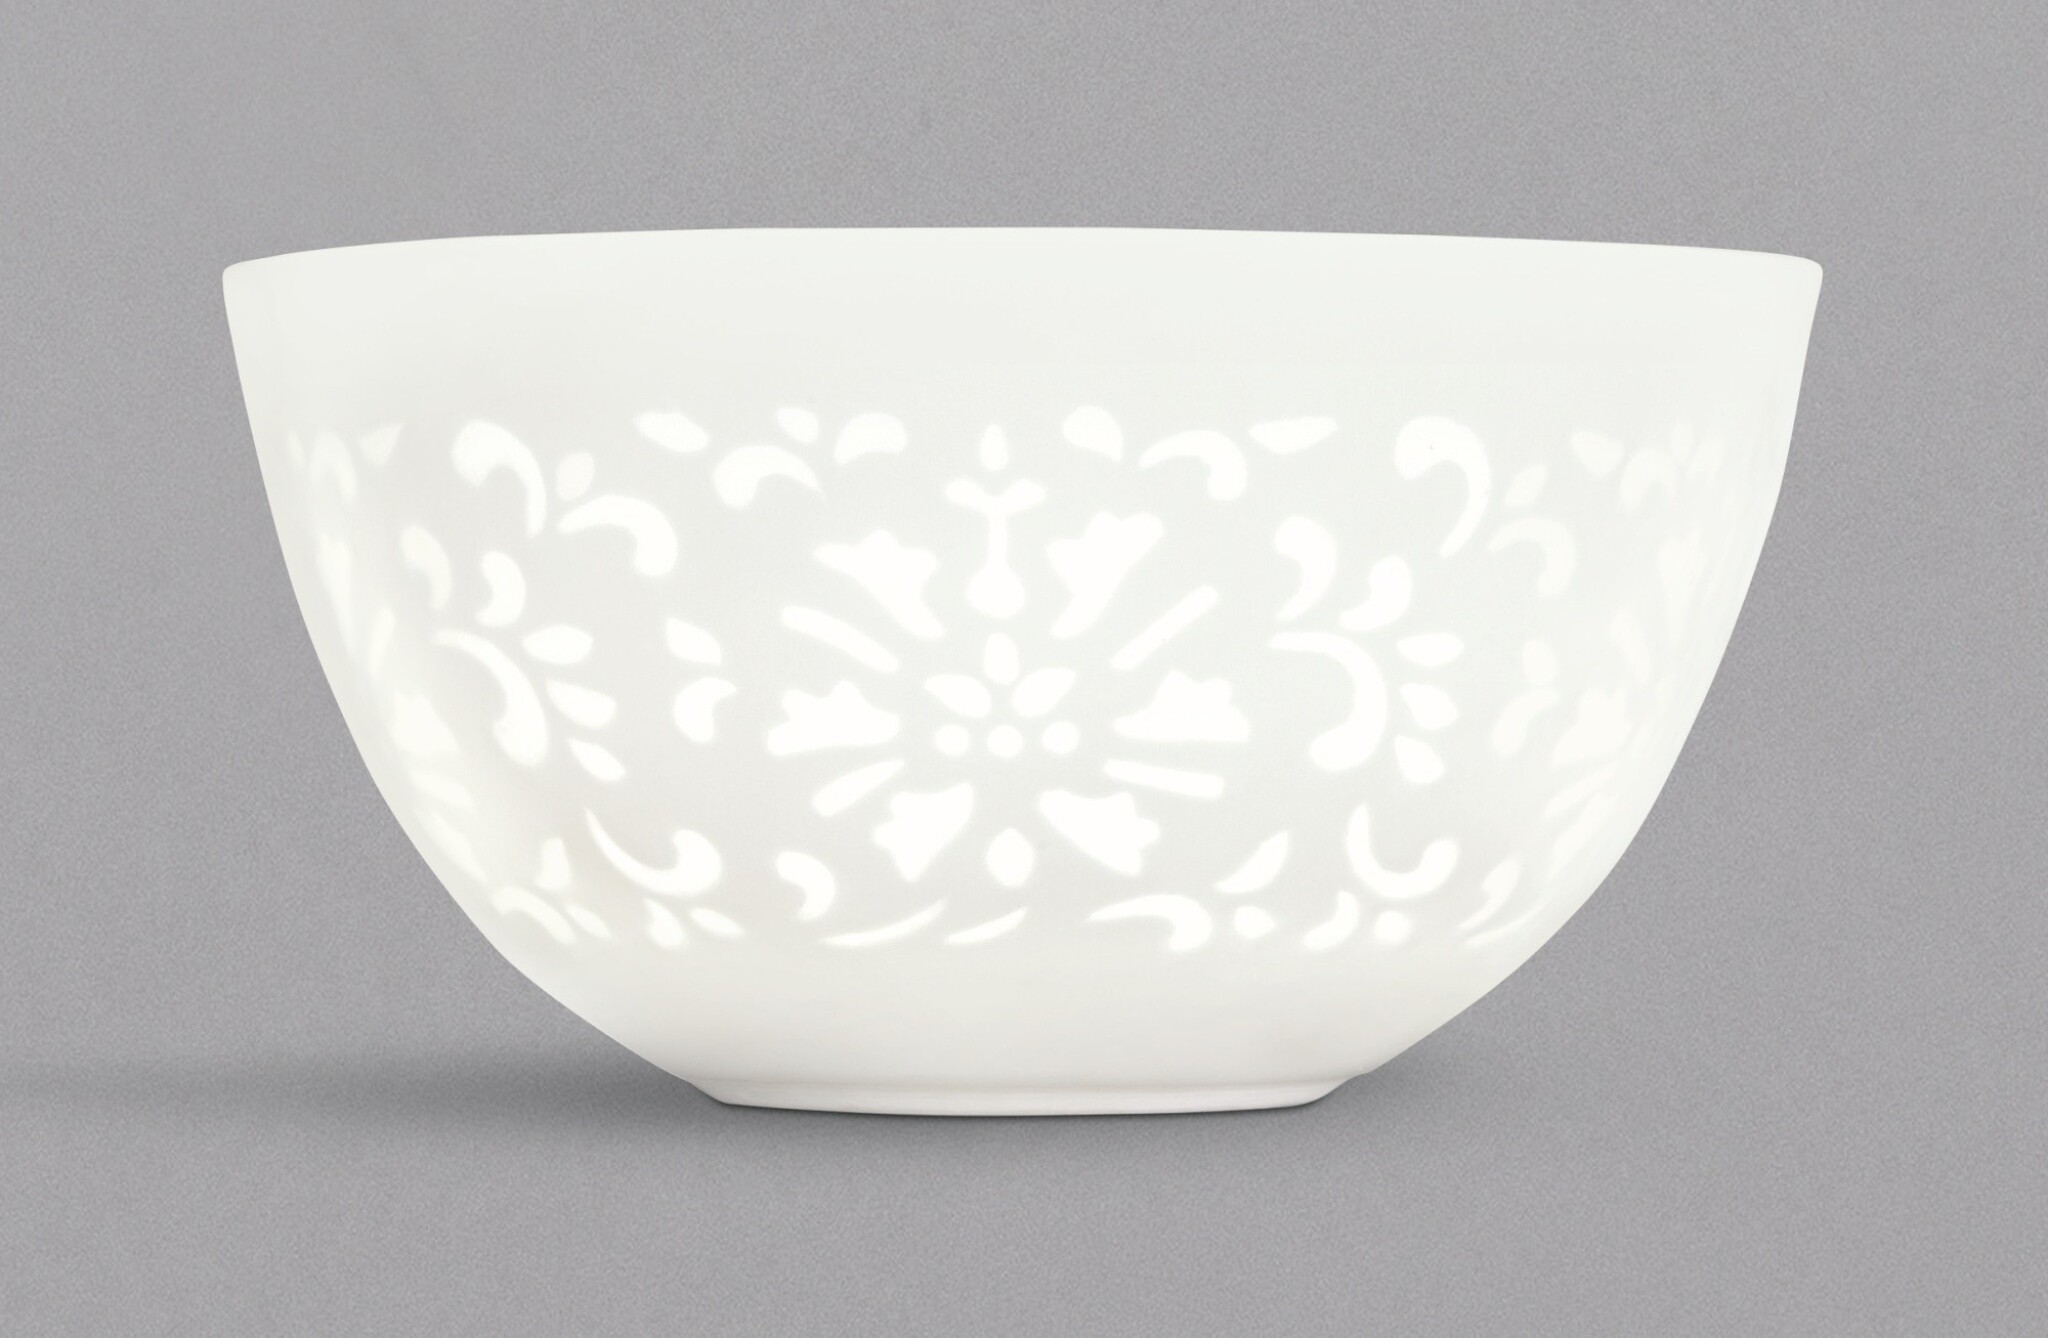 View full screen - View 1 of Lot 2. A FINE AND RARE SMALL WHITE-GLAZED CUT-THROUGH 'LOTUS' CUP, QING DYNASTY, 18TH CENTURY, YUYAN SHUWU MARK | 清十八世紀 白釉玲瓏透花蓮紋小盃 《浴硯書屋》款 .